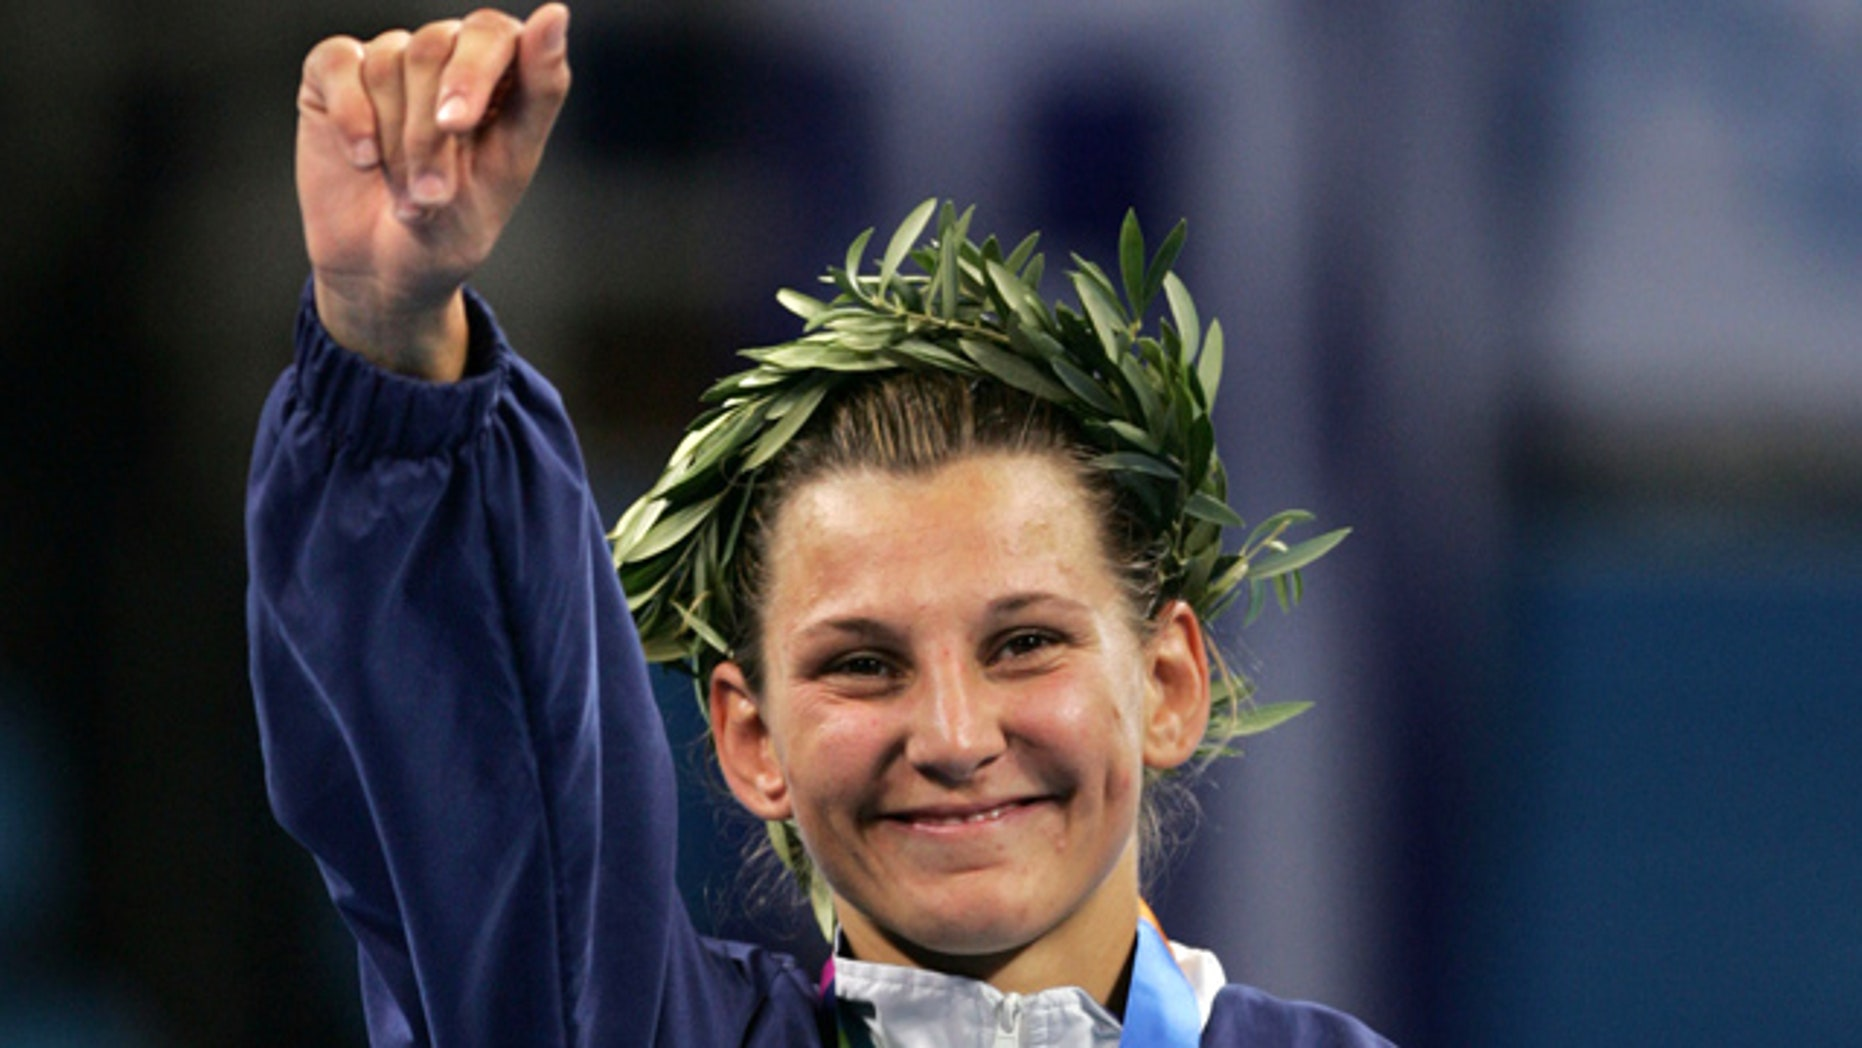 In this Aug. 17, 2004, file photo, silver medalist Claudia Heill of Austria waves to the crowd after the women's judo half-middle weight (-63kg) event at the 2004 Olympic Games in Athens.